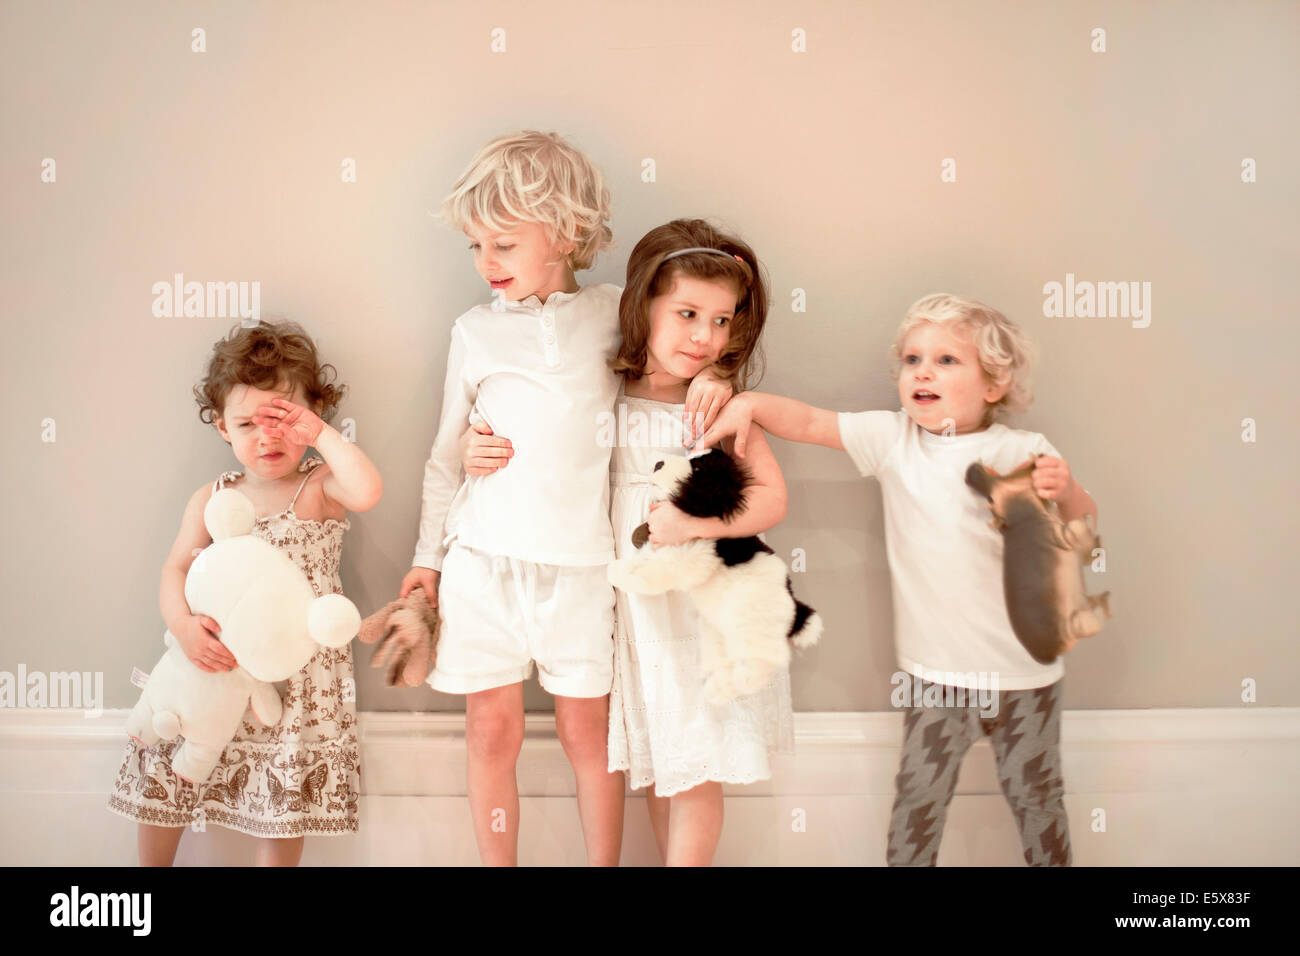 Portrait of four young children in a row, one crying - Stock Image